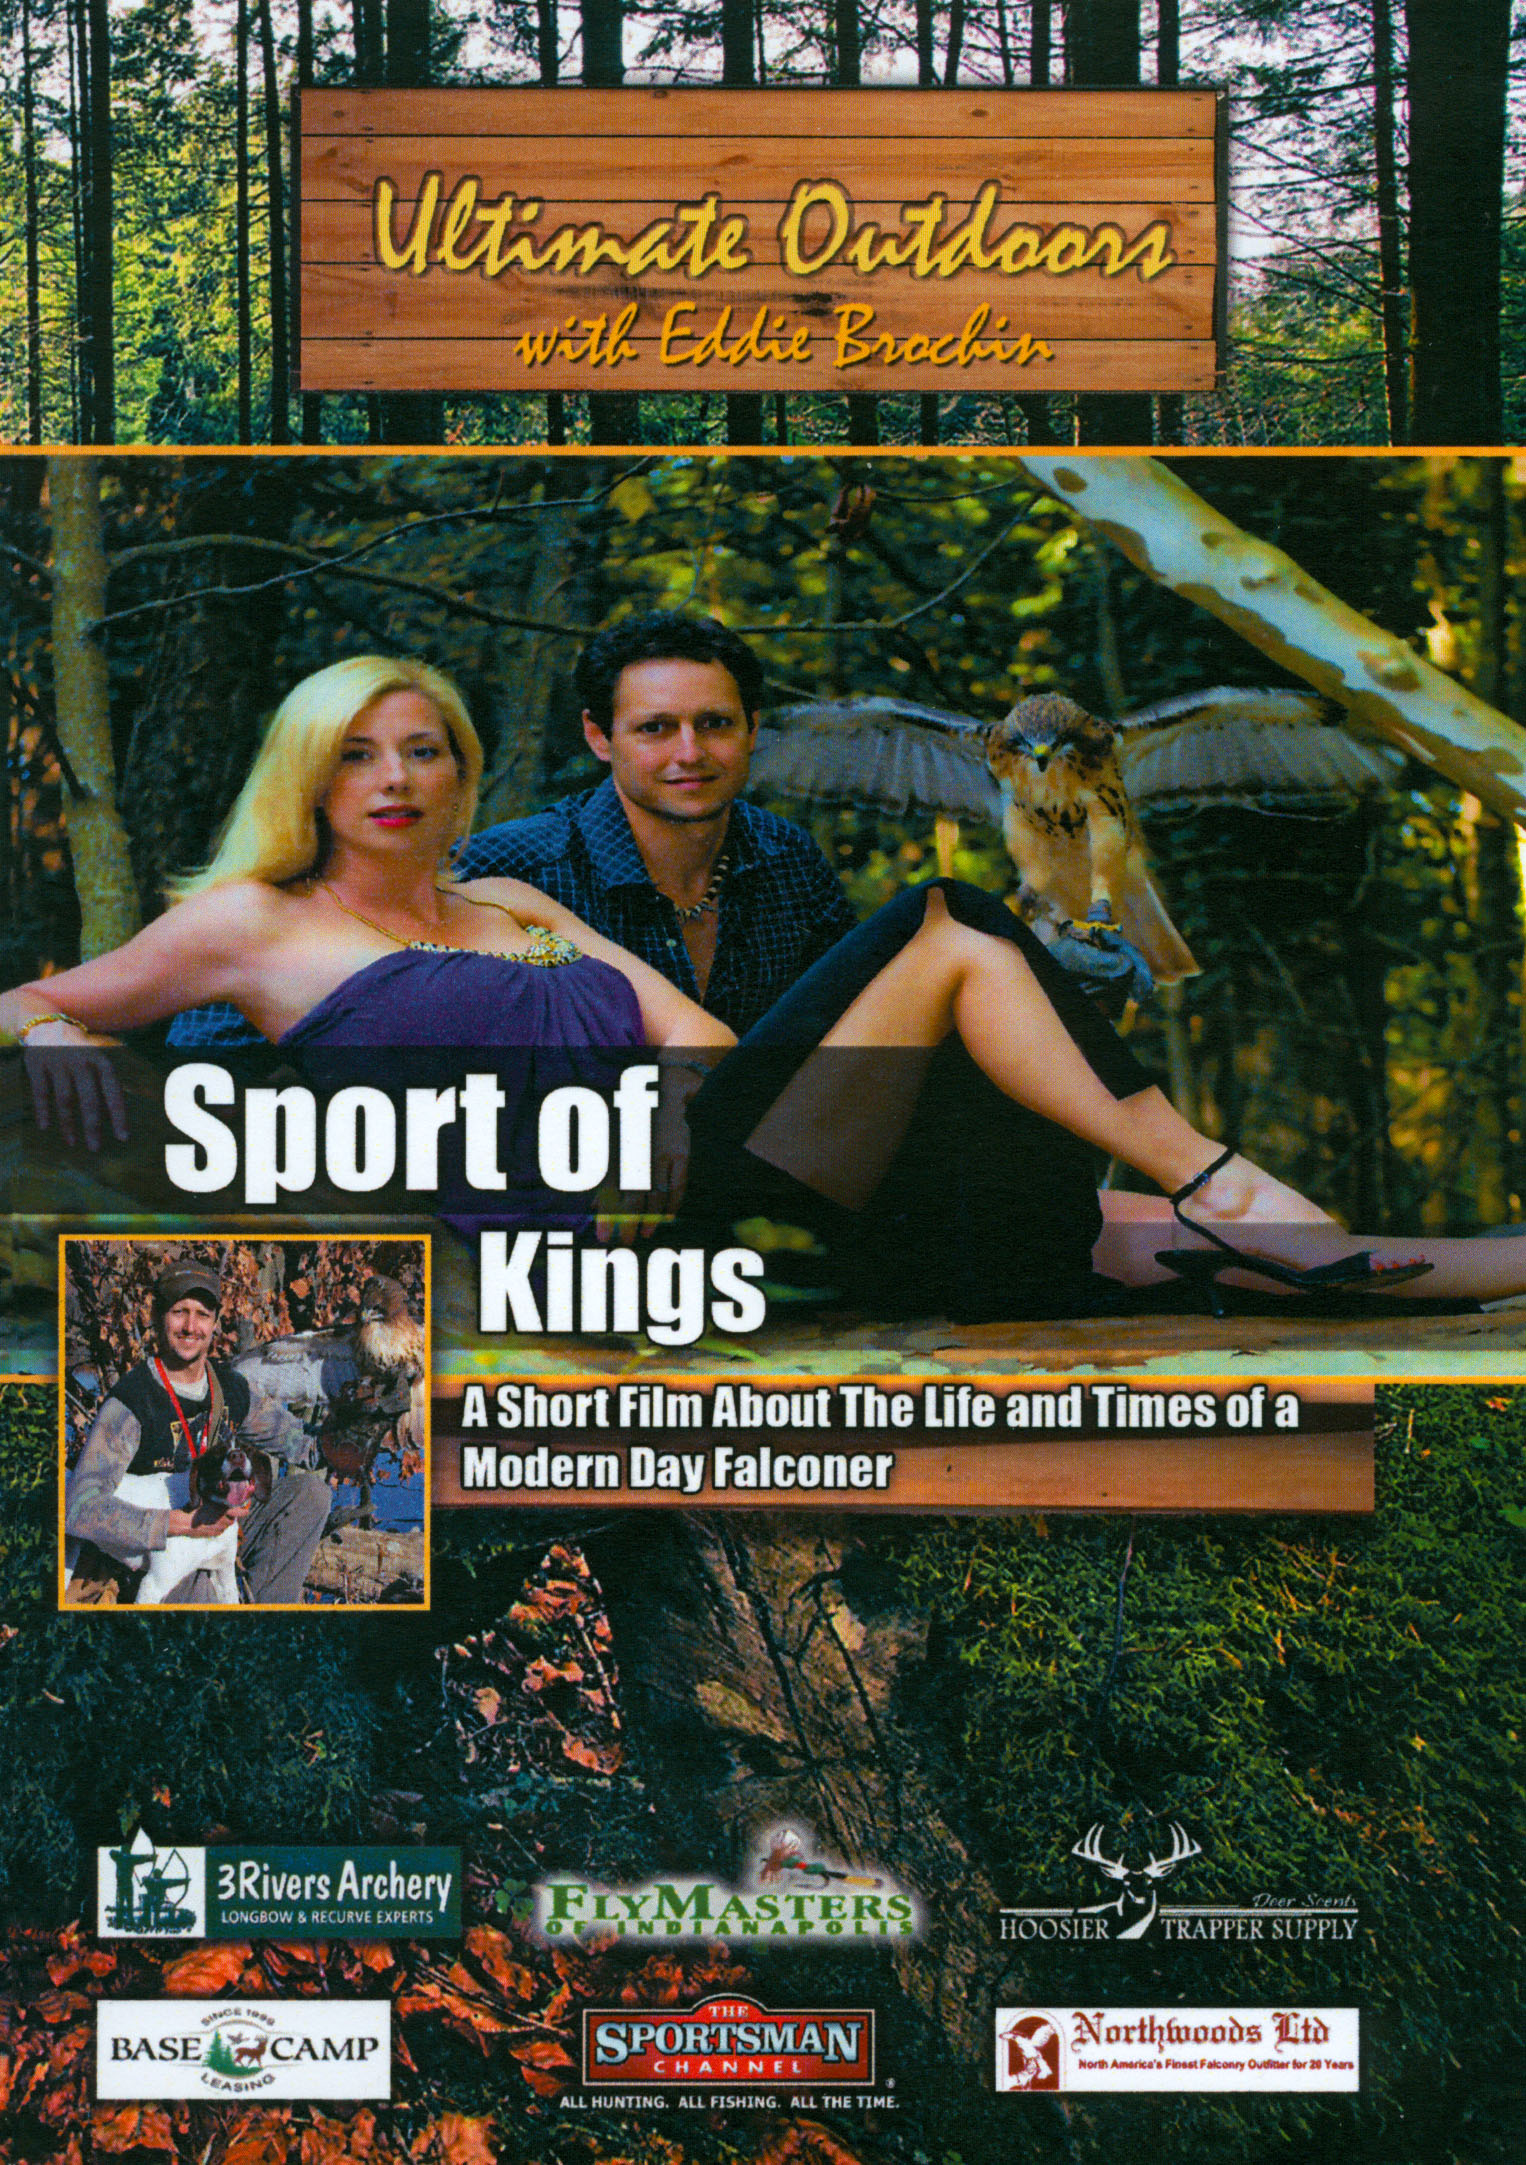 Ultimate Outdoors With Eddie Brochin: Sport of Kings